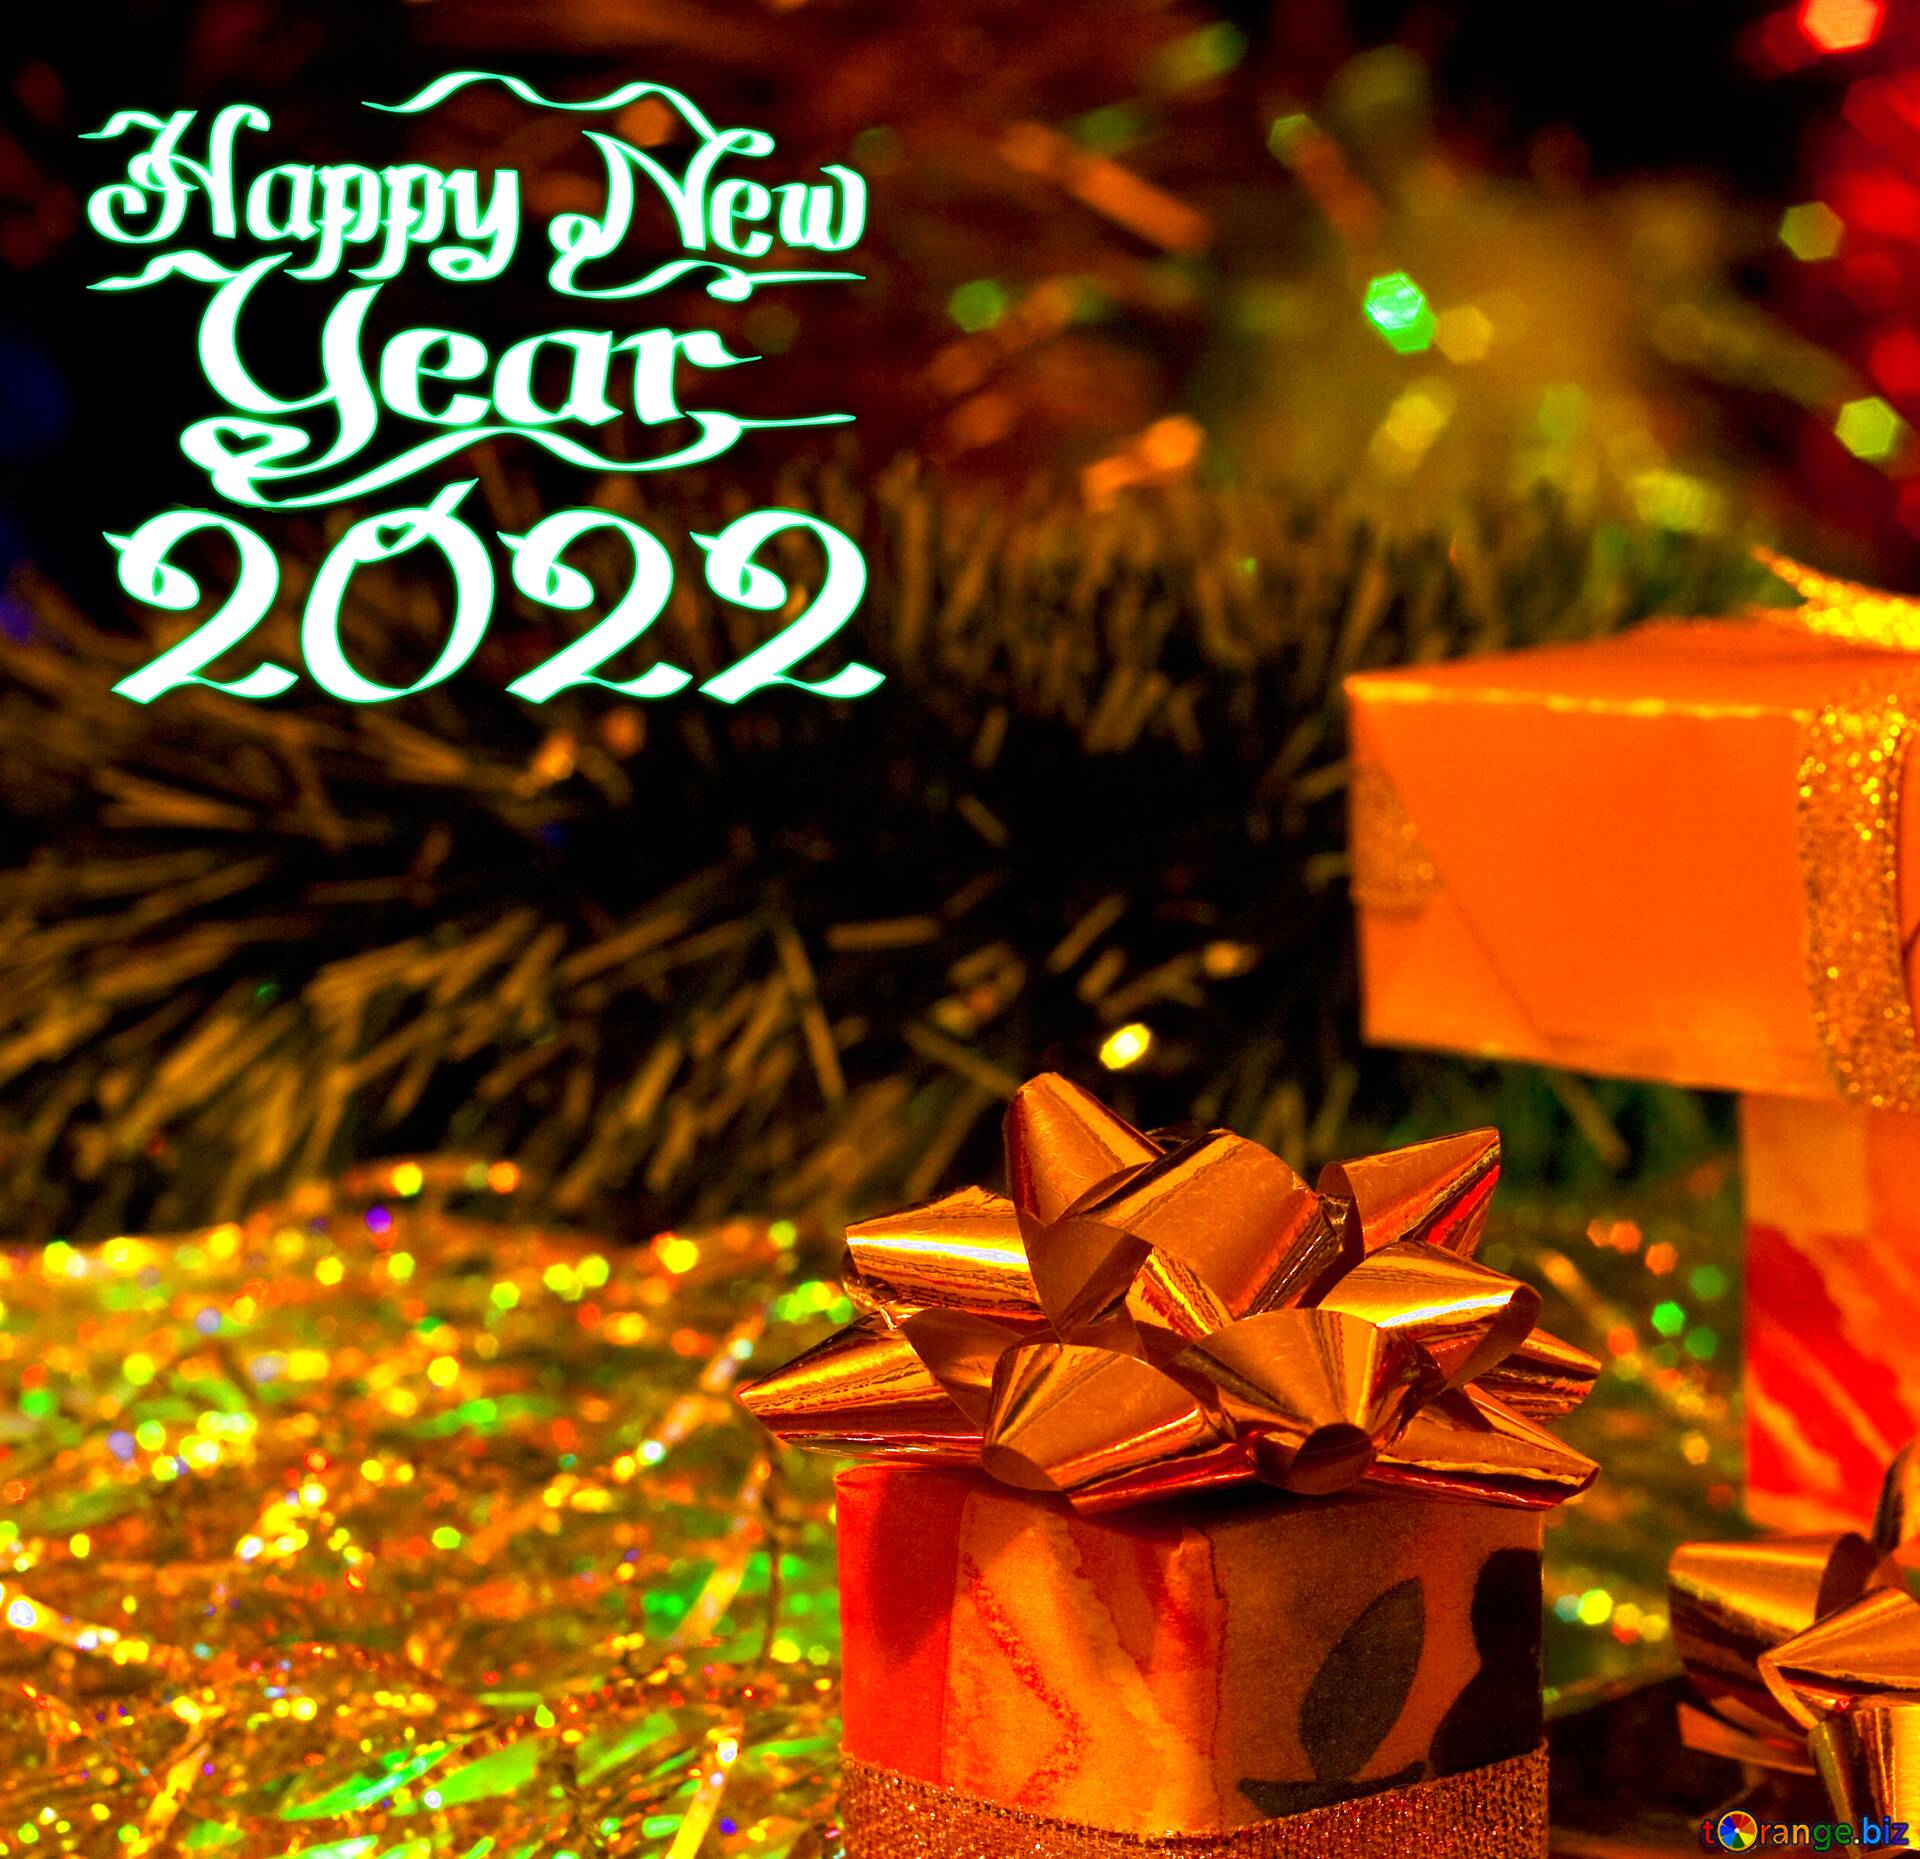 download free picture gifts christmas tree 2021 happy new year christmas gifts on cc by license free image stock torange biz fx 198328 download free picture gifts christmas tree 2021 happy new year christmas gifts on cc by license free image stock torange biz fx 198328